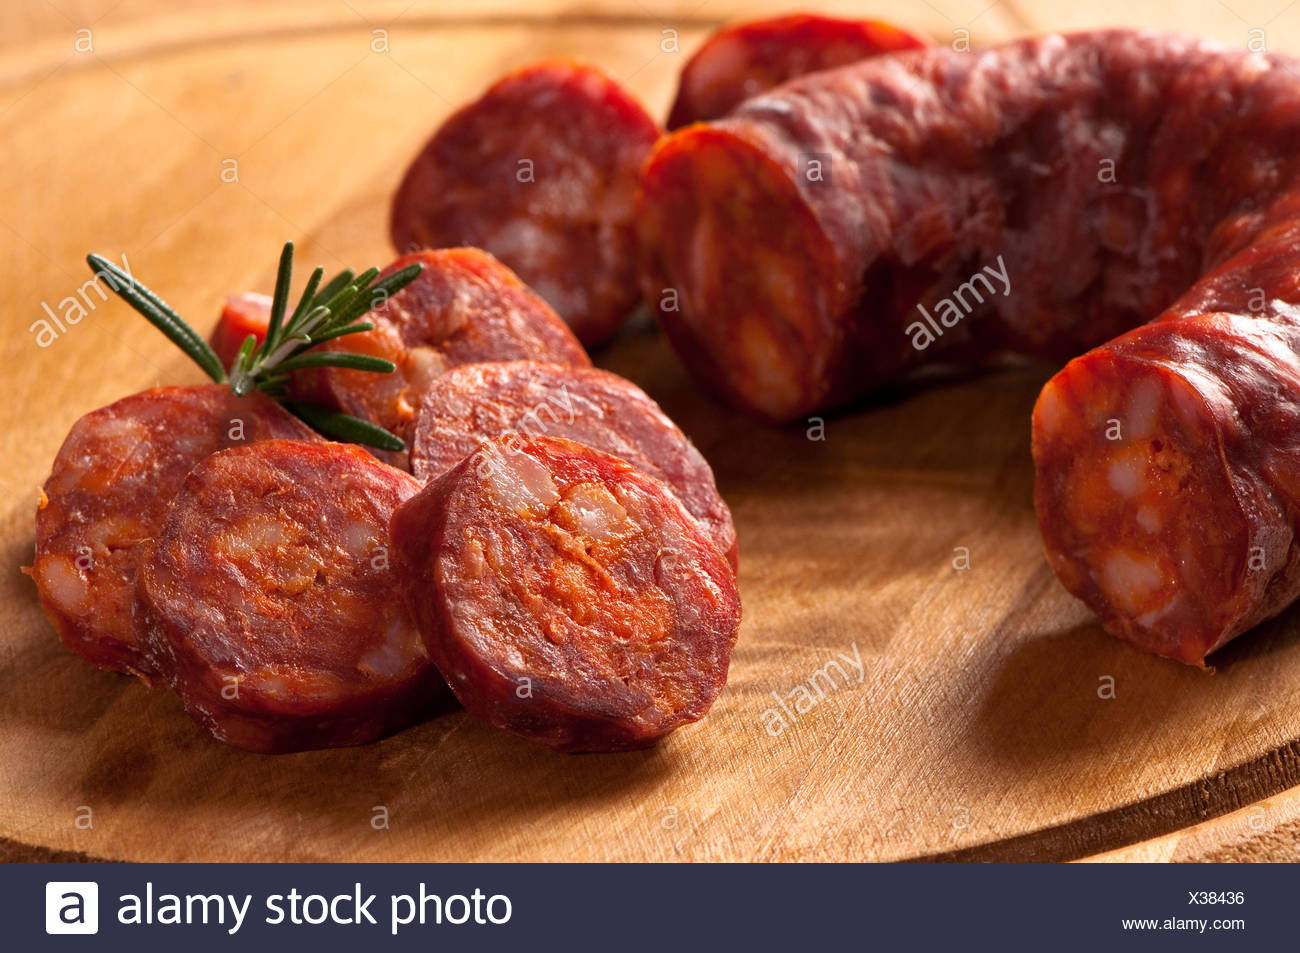 sausage sliced slices - Stock Image